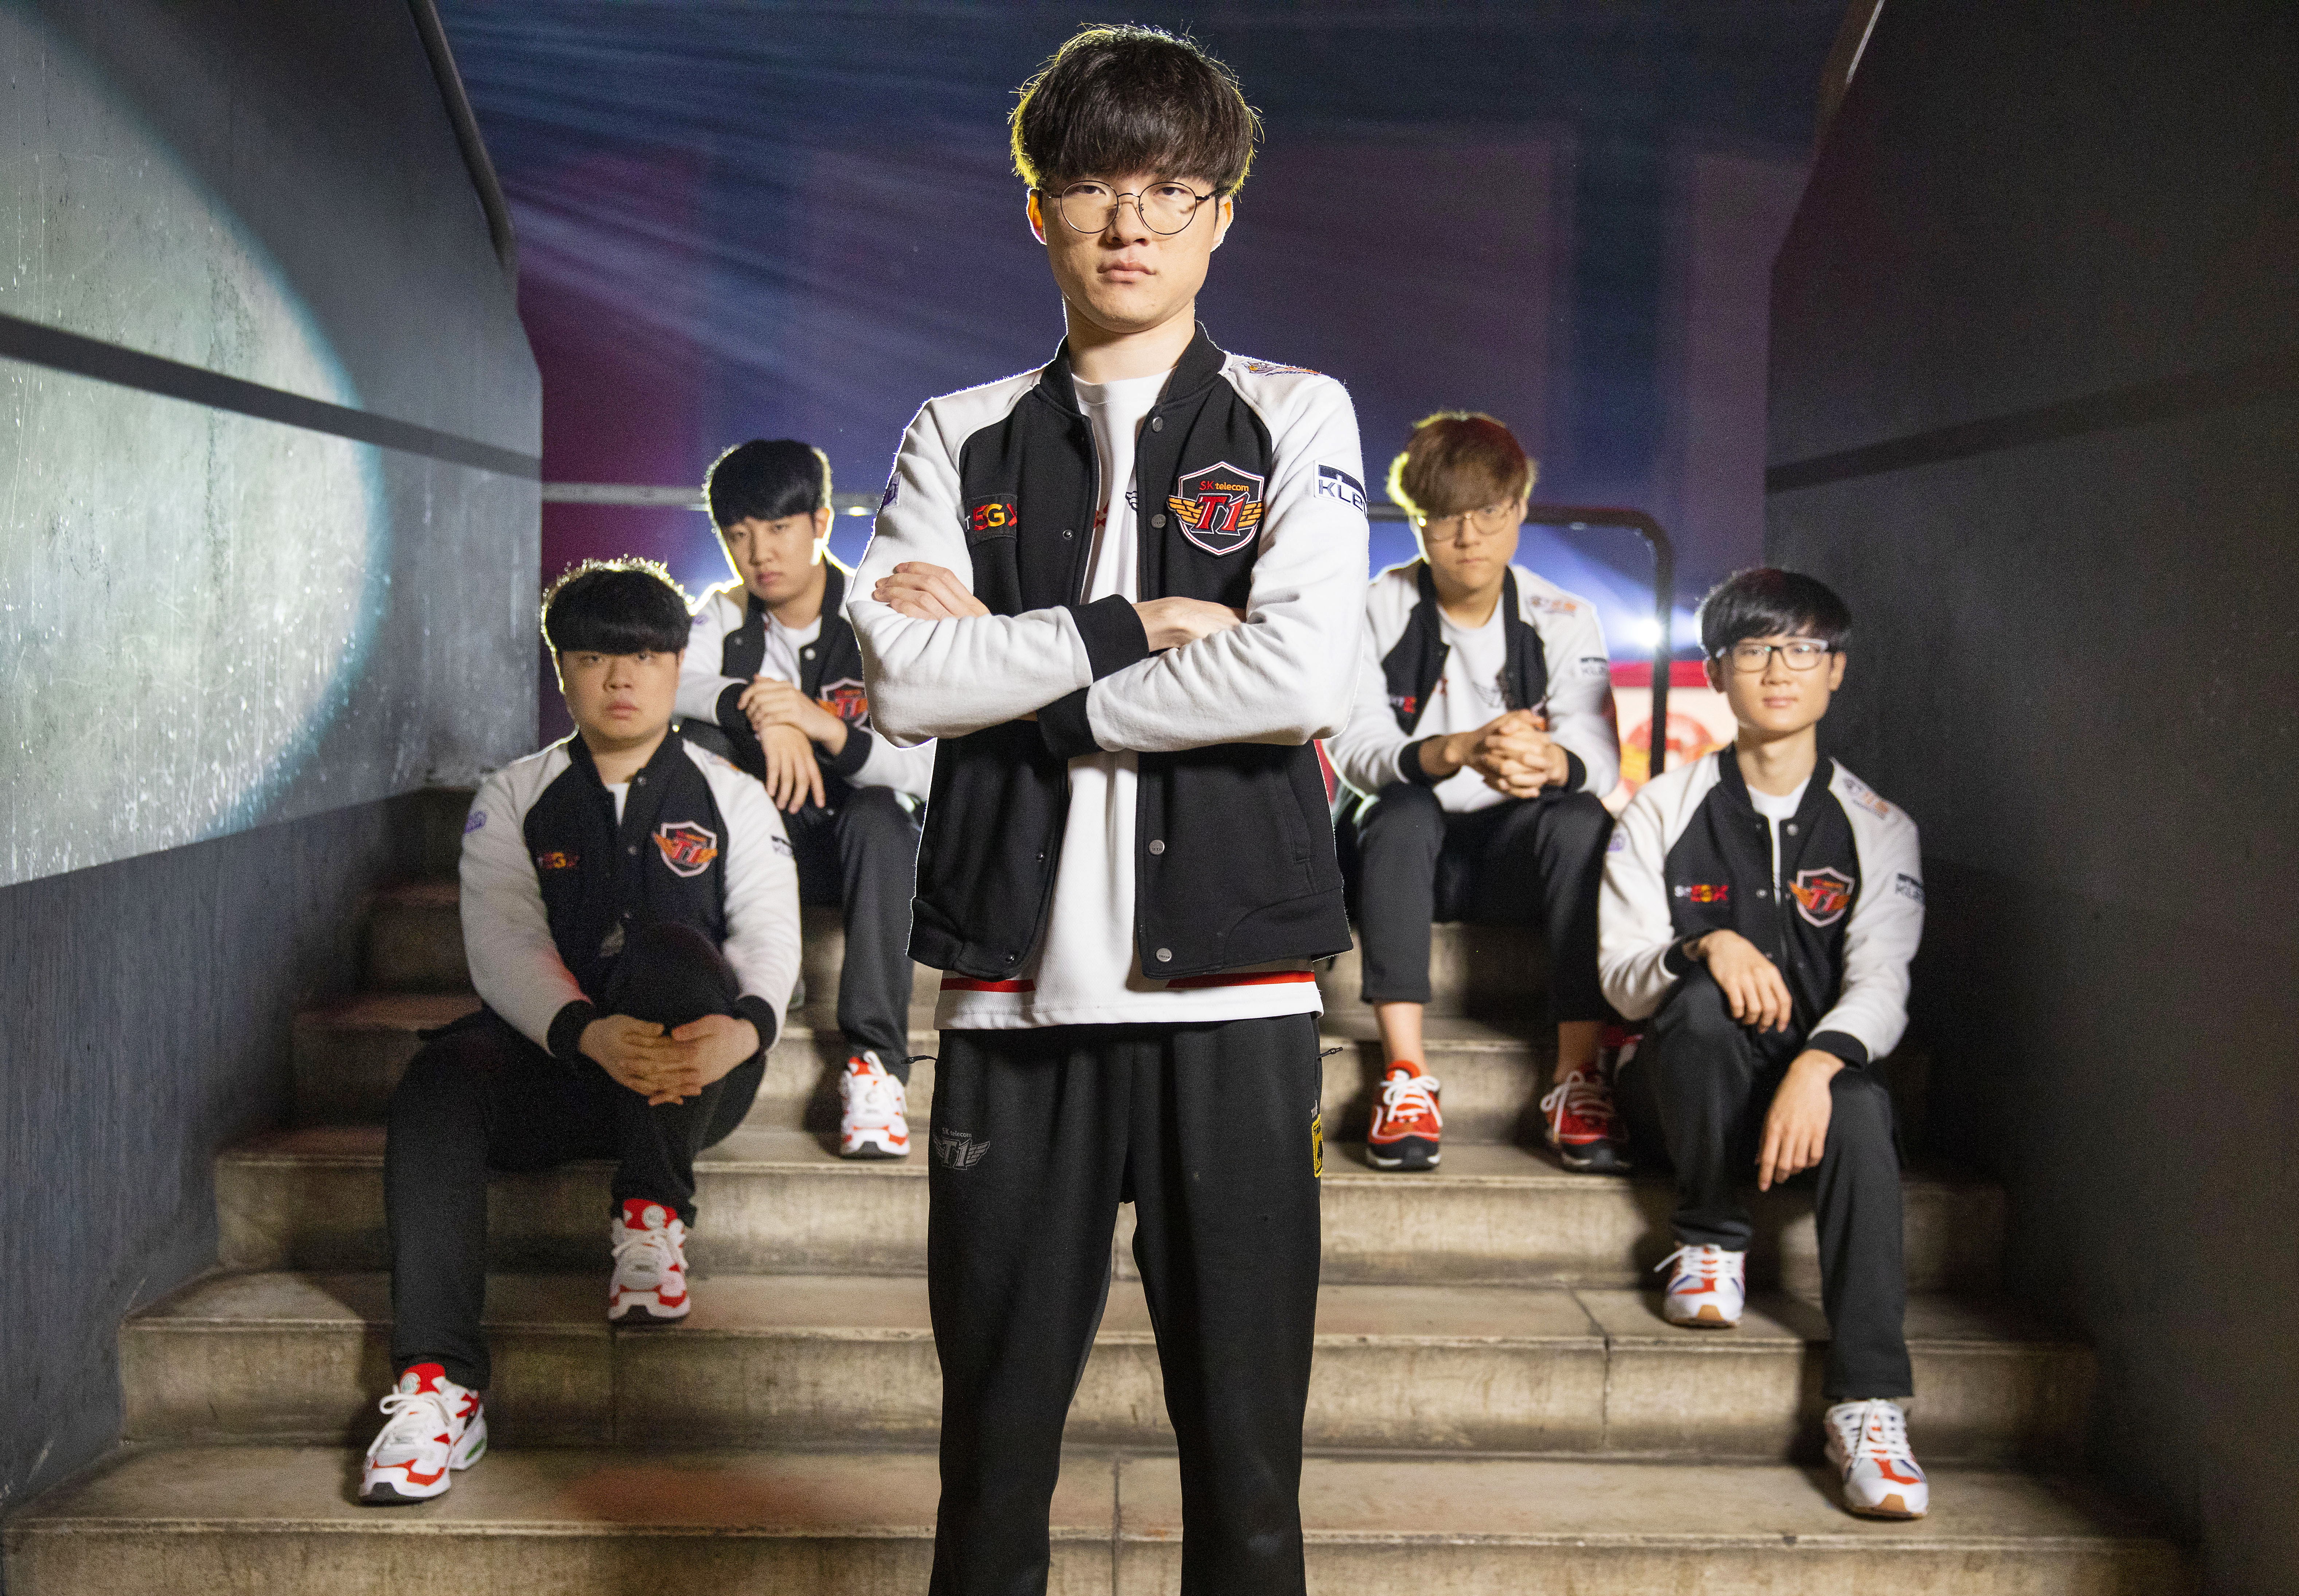 Team SKT1 with Faker in front of the group